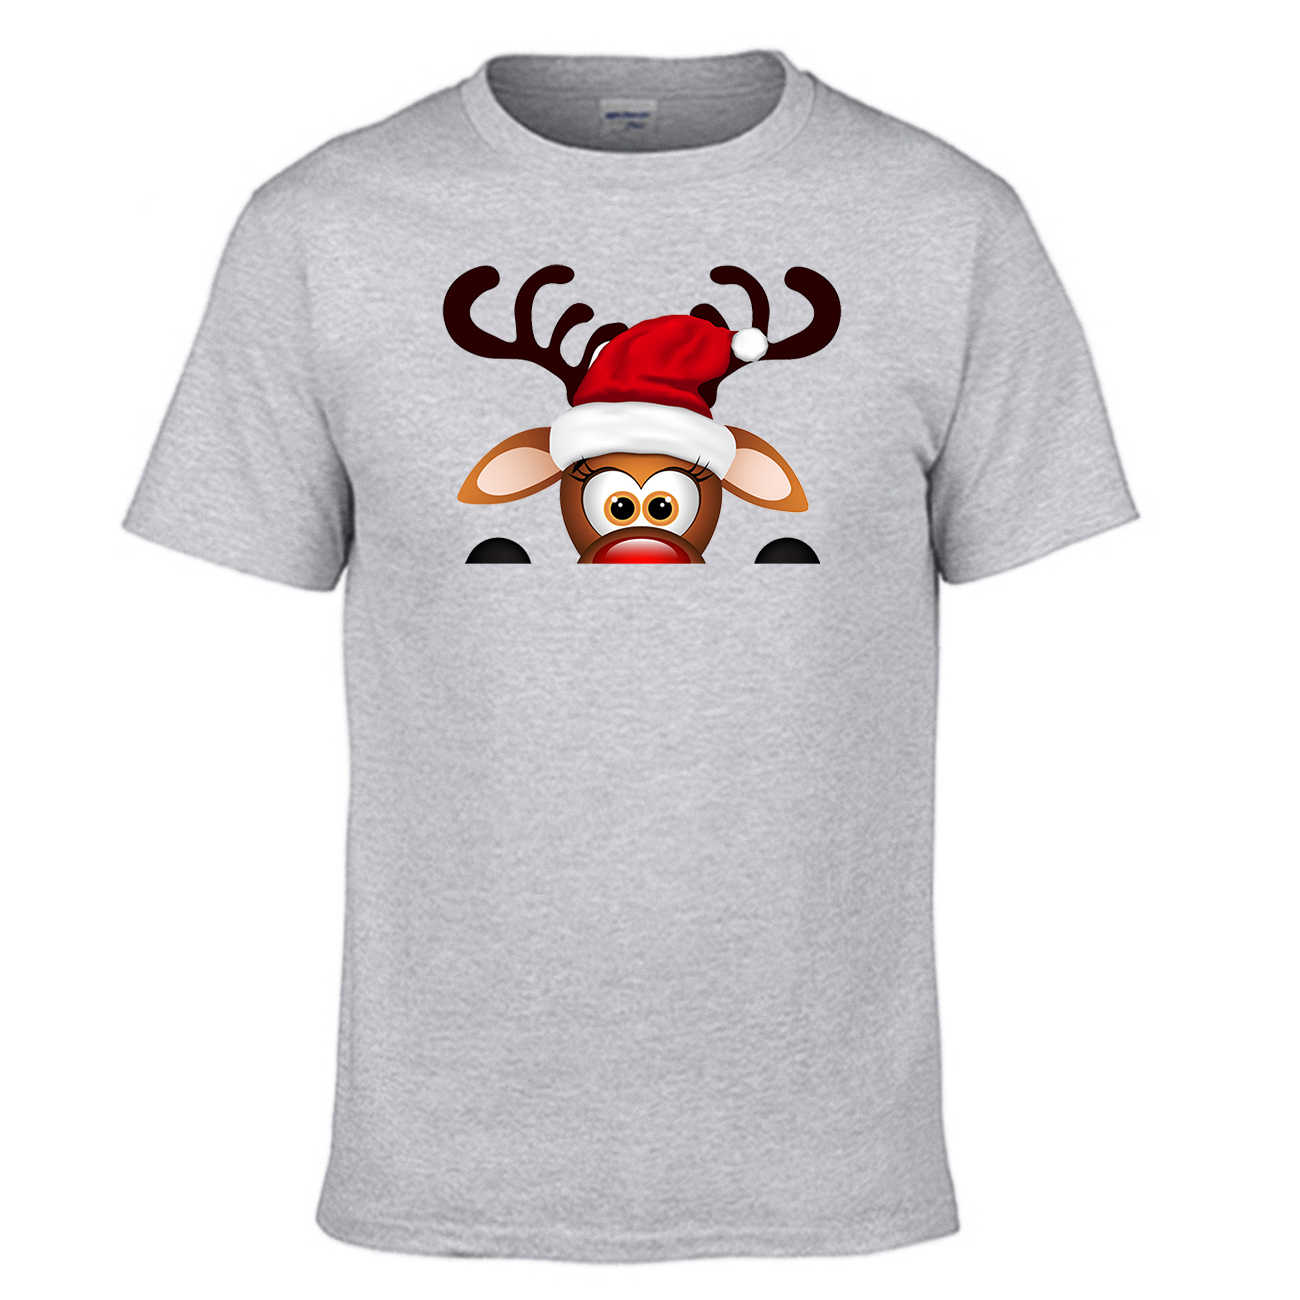 Men Funny Christmas Reindeer Cute T Shirt Men New Year Short Sleeve Cotton Summer Tees Couple Rudolph Gift Party Clothes Shirts